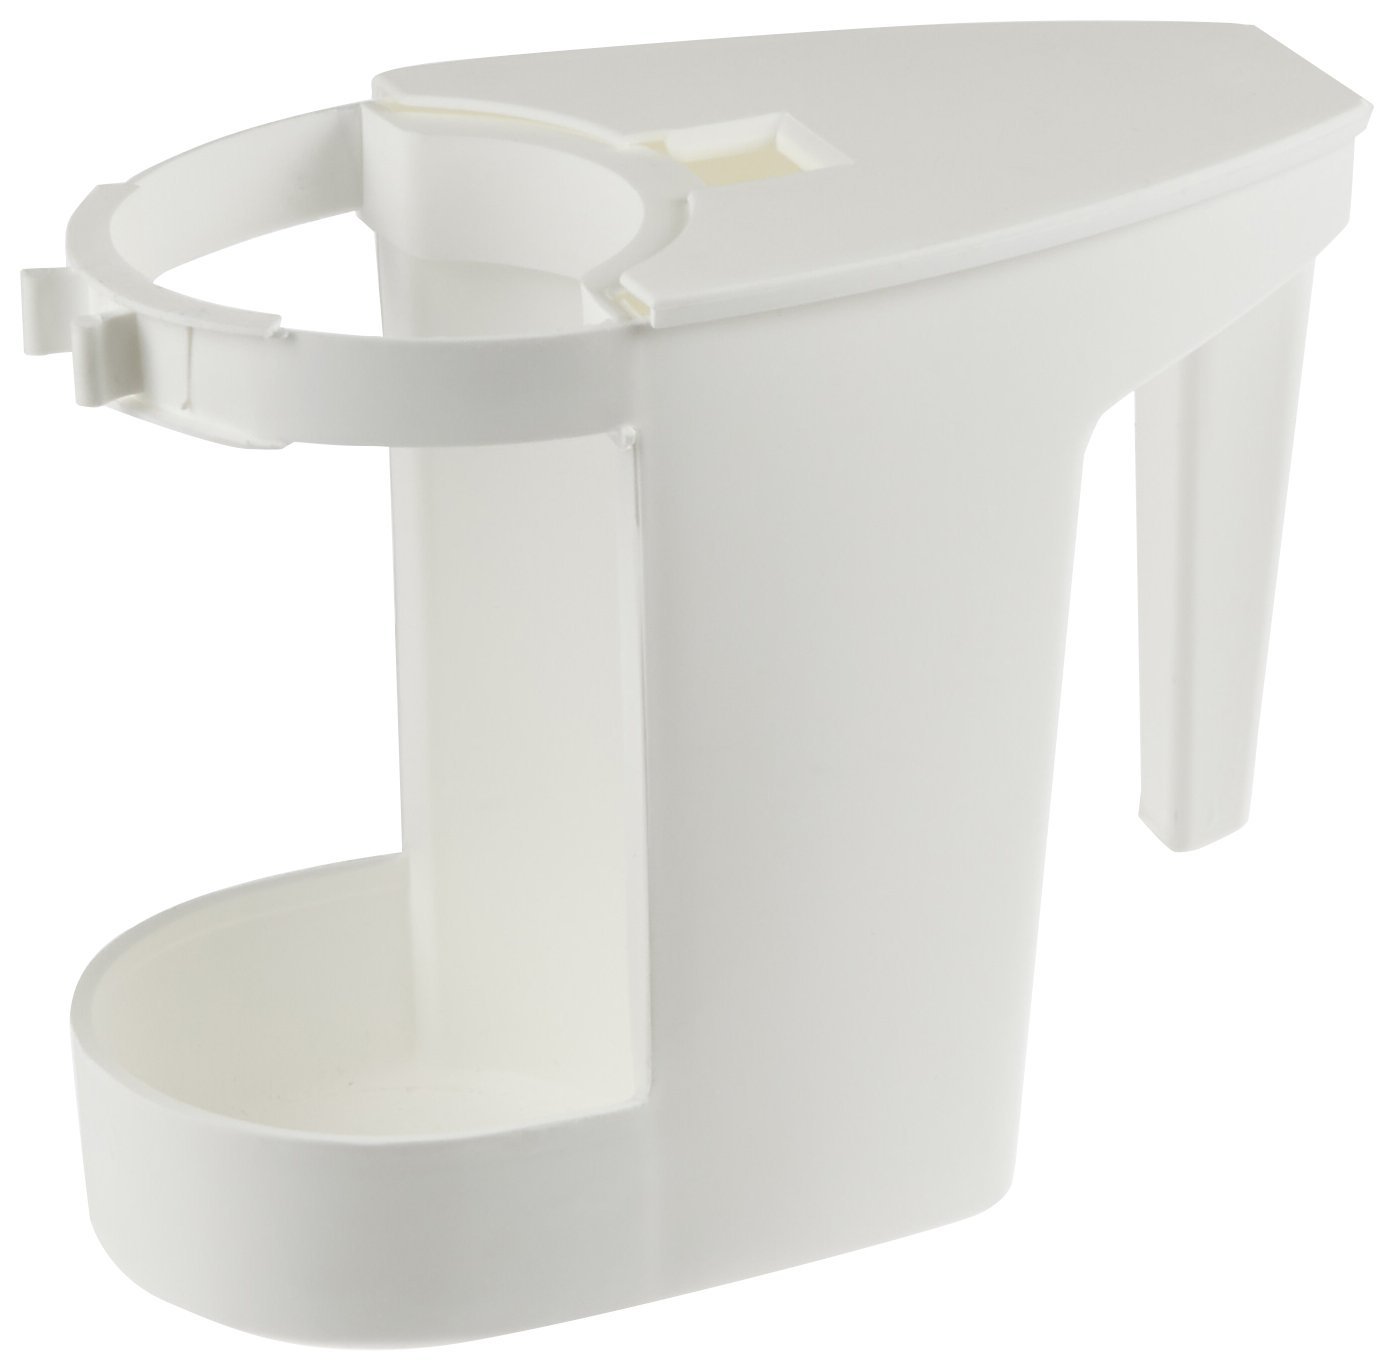 Impact 100 Super Toilet Bowl Caddy, 8'' Length x 4'' Width x 6'' Height, White (Case of 12)